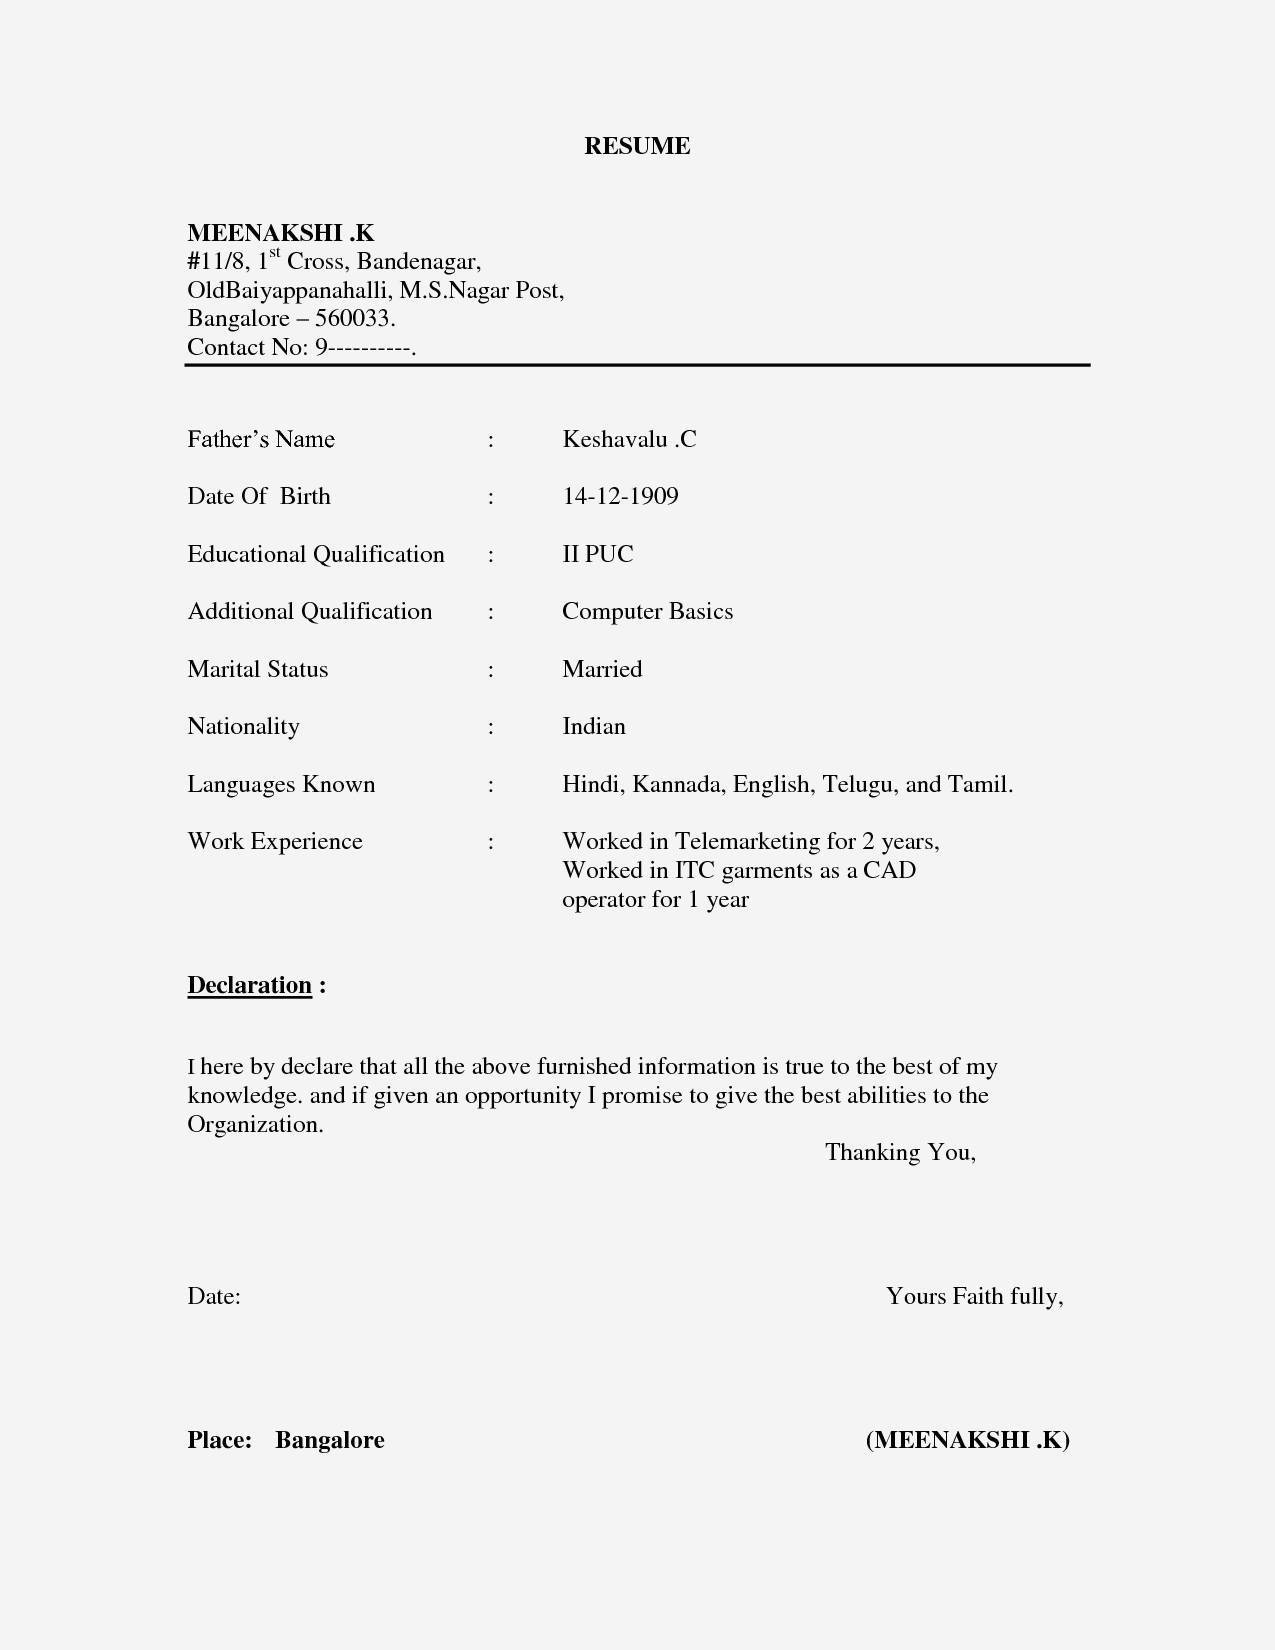 Resume Format Doc Free Download